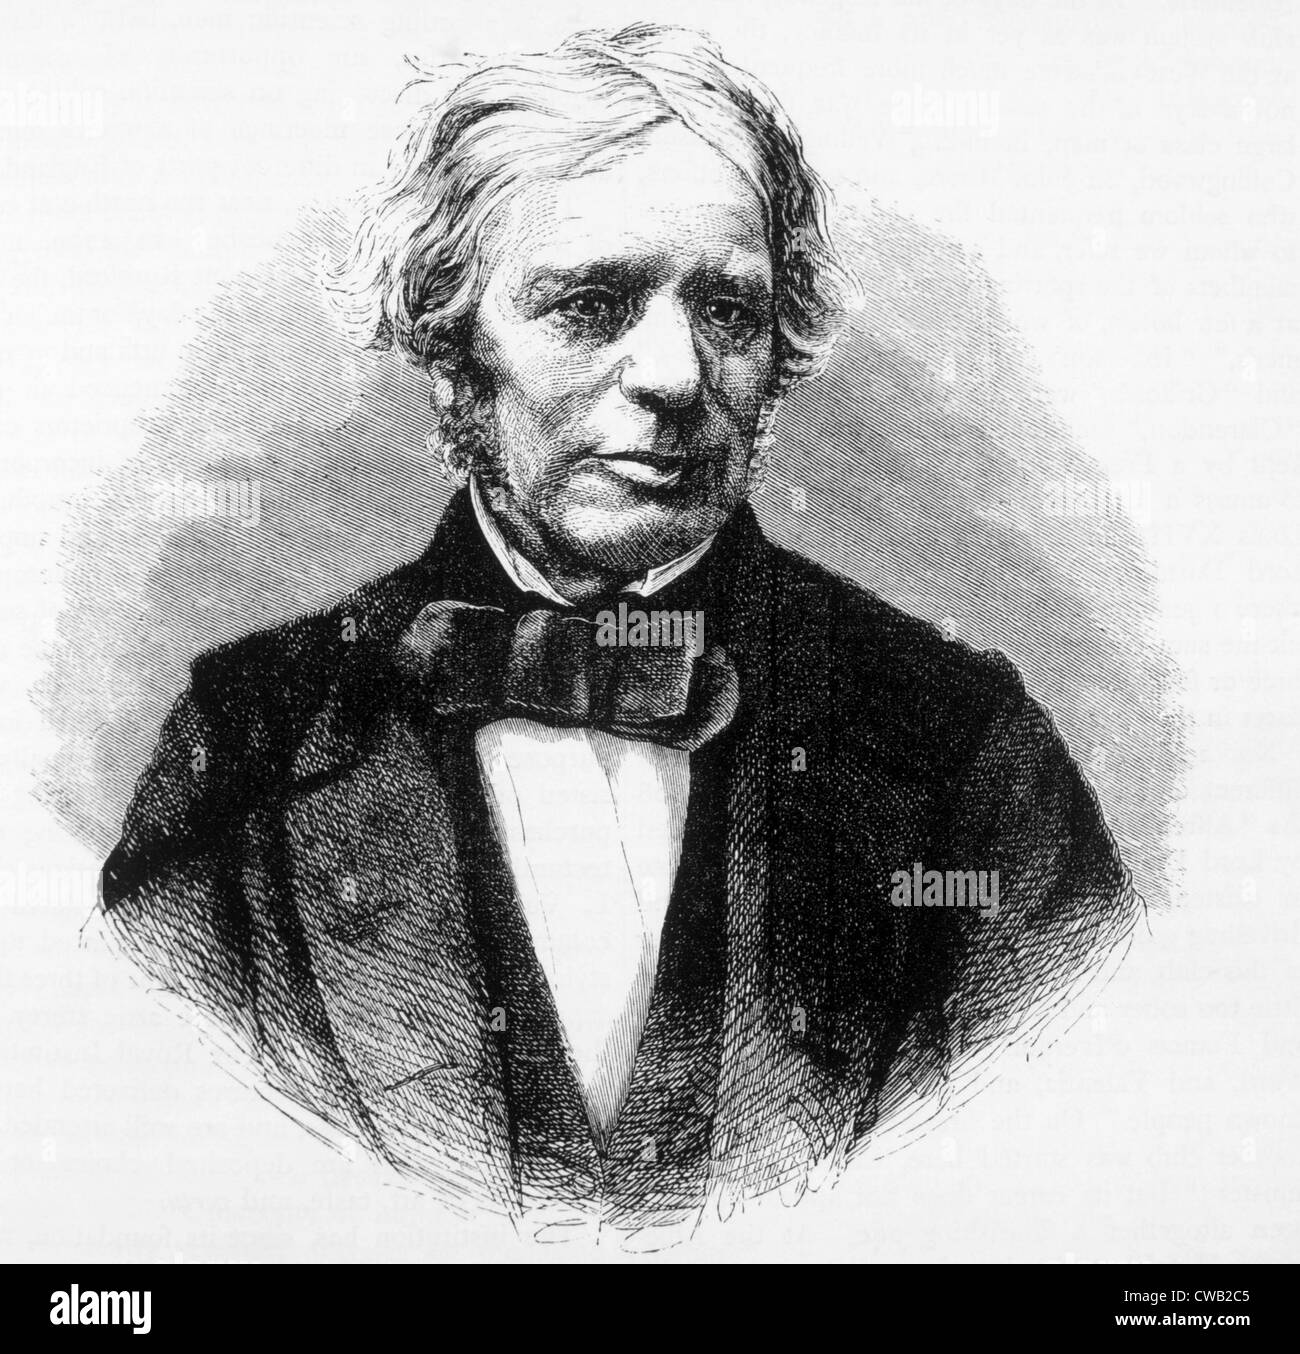 Michael Faraday (1791-1867), discoverer of electromagnetic induction (1831) and formulator of Faraday's Law - Stock Image